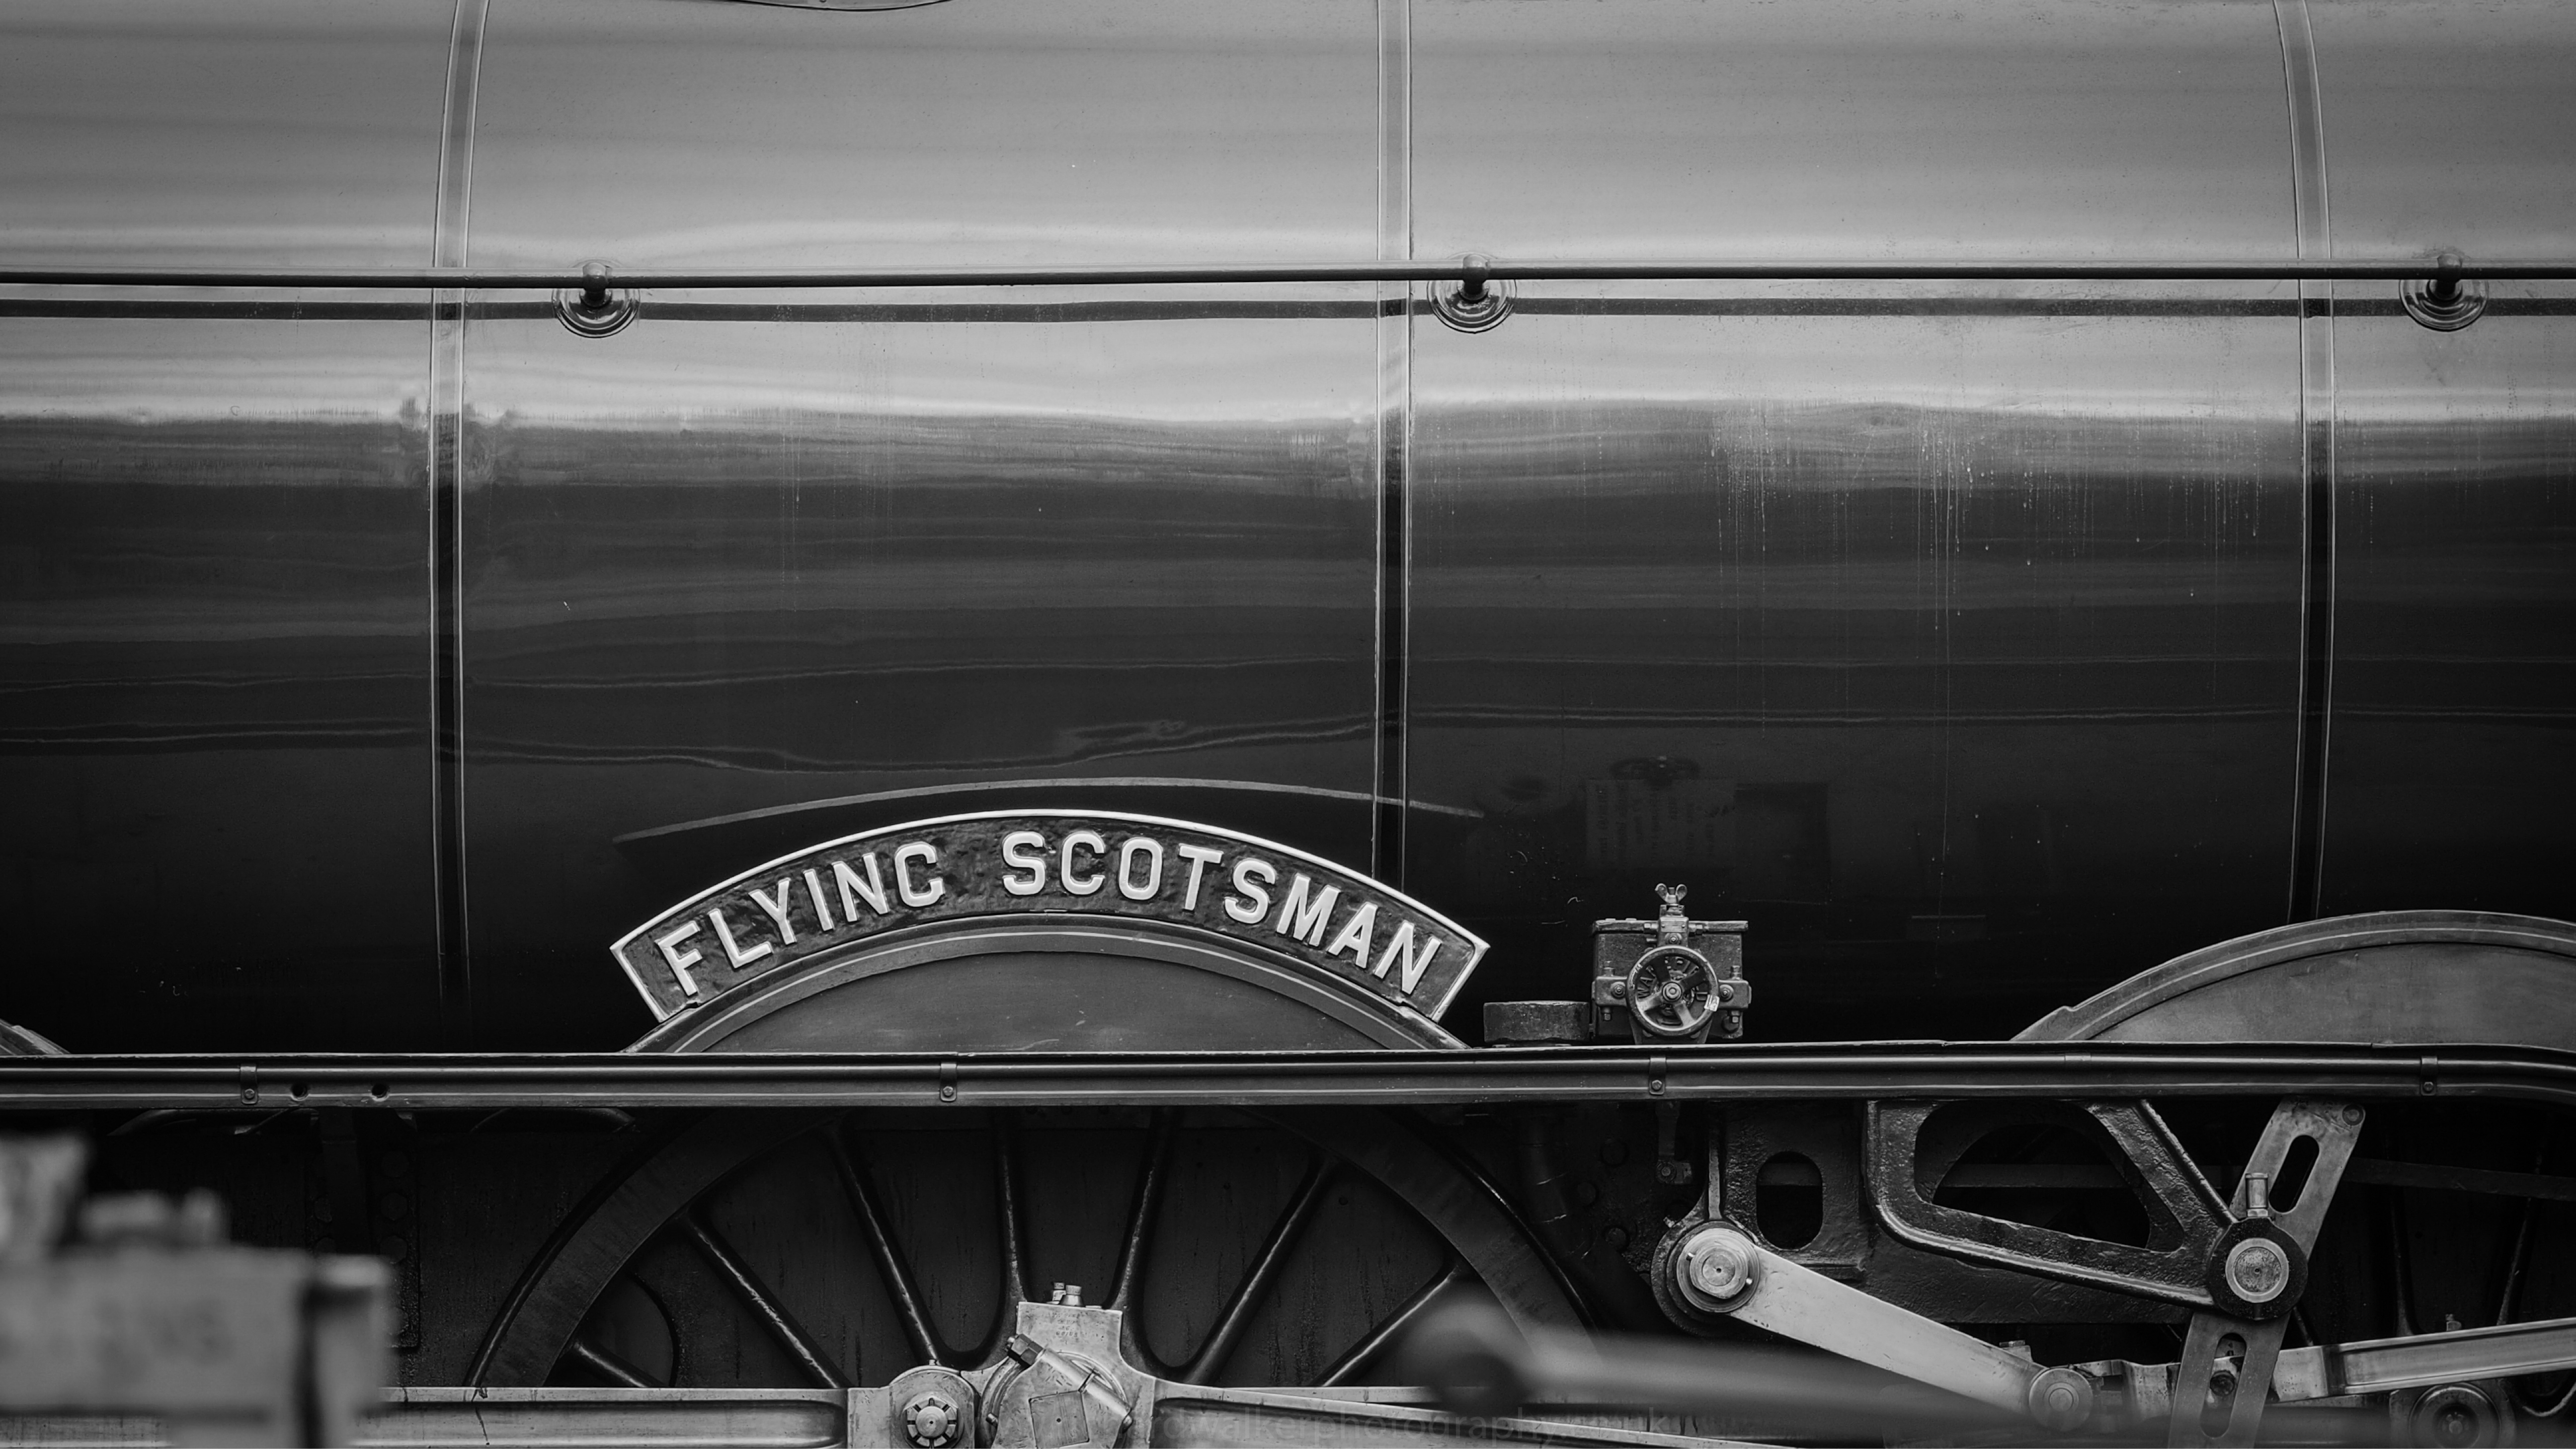 The Flying Scotsman nameplate in black and white